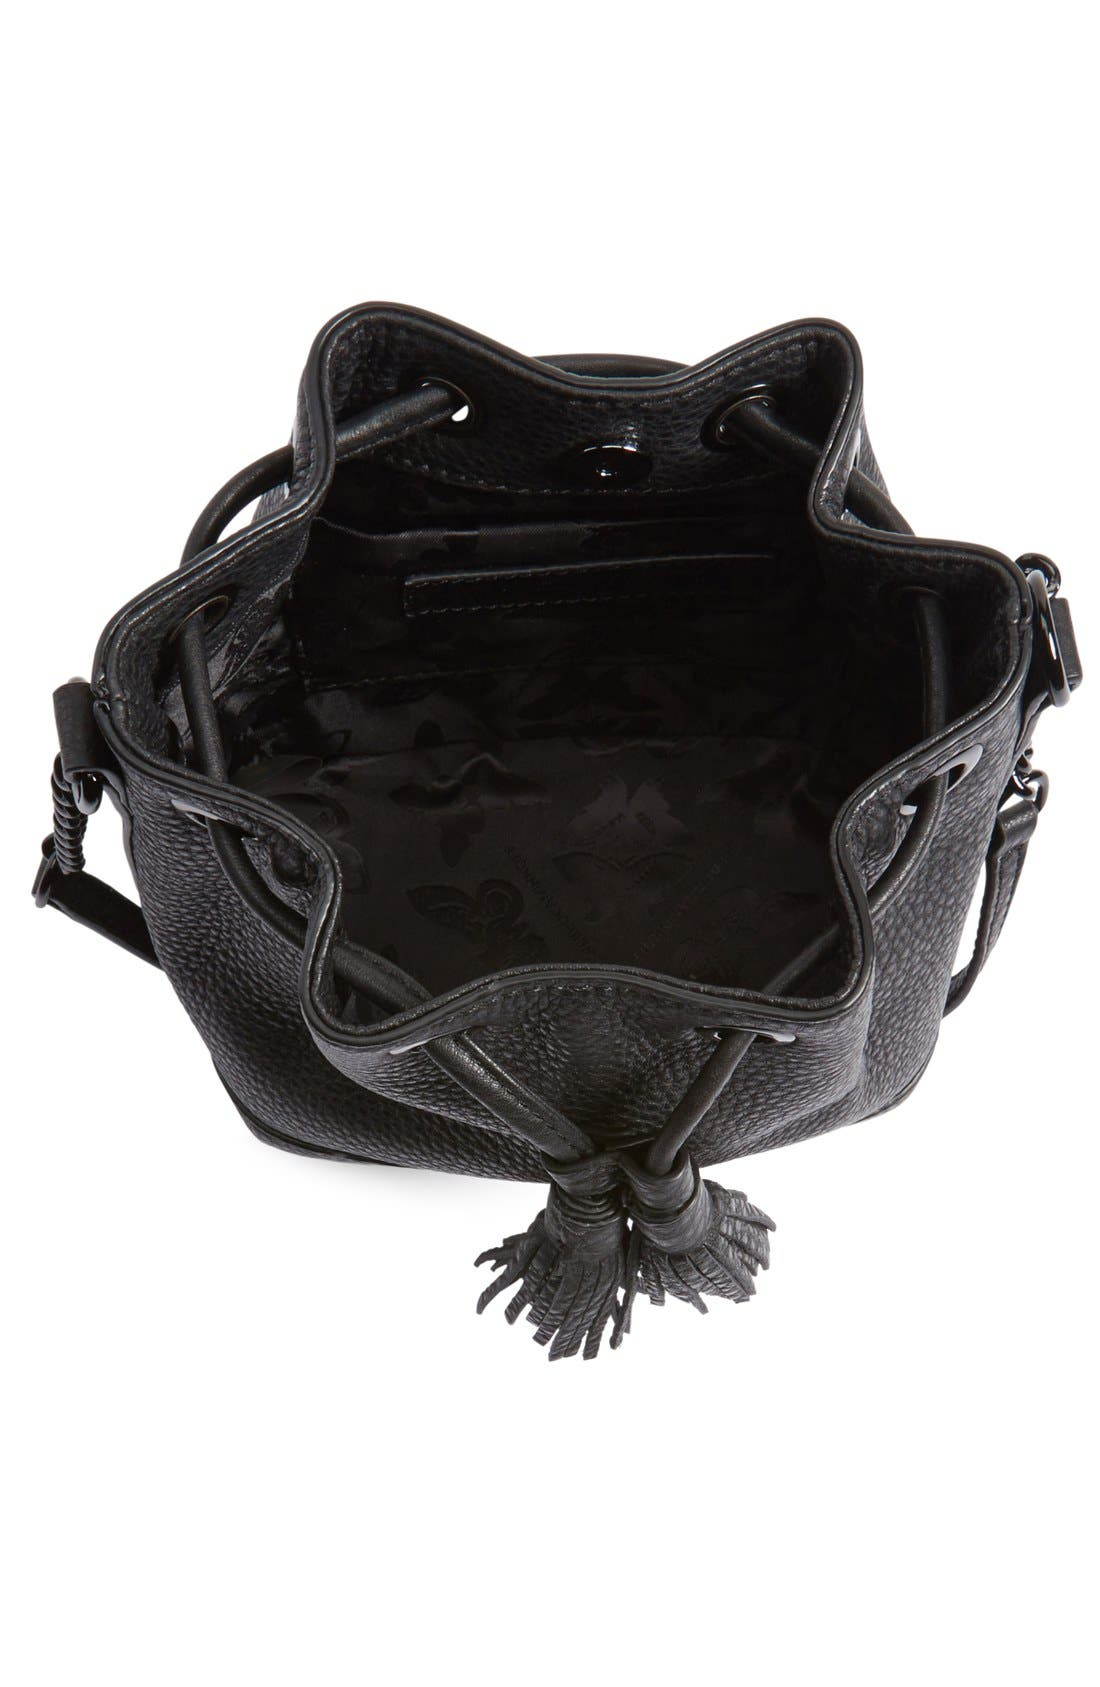 'Micro Lexi' Bucket Bag,                             Alternate thumbnail 6, color,                             001